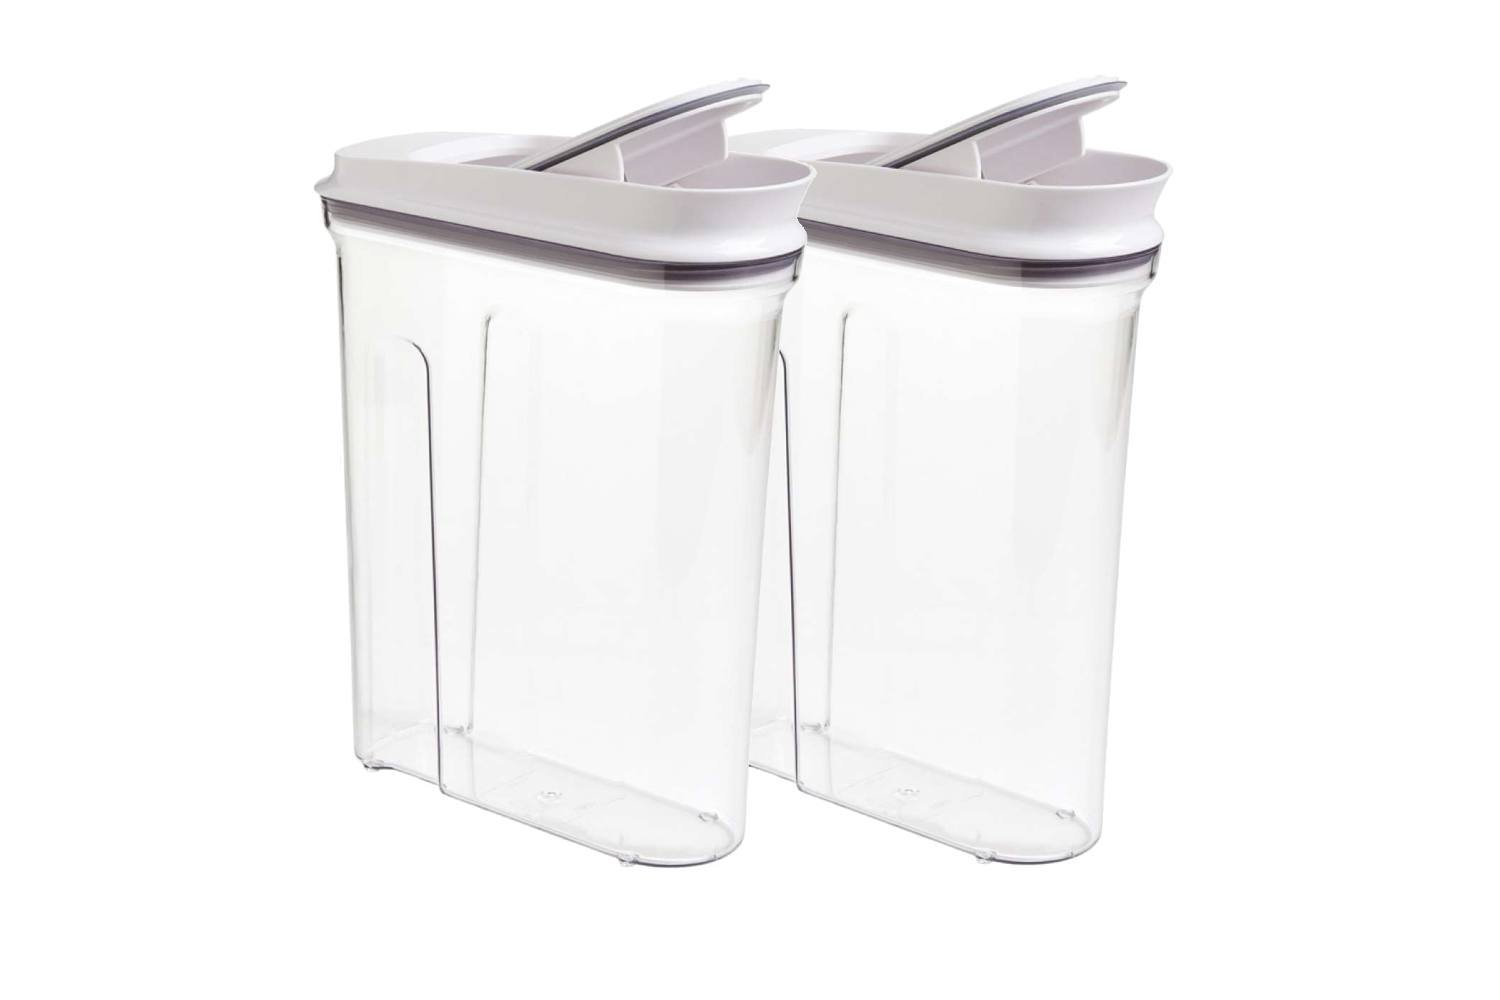 Oxo Softwoks Cereal Keeper, (2 pack) Pop Cereal Dispenser Set 4.5qt/4.2L Each